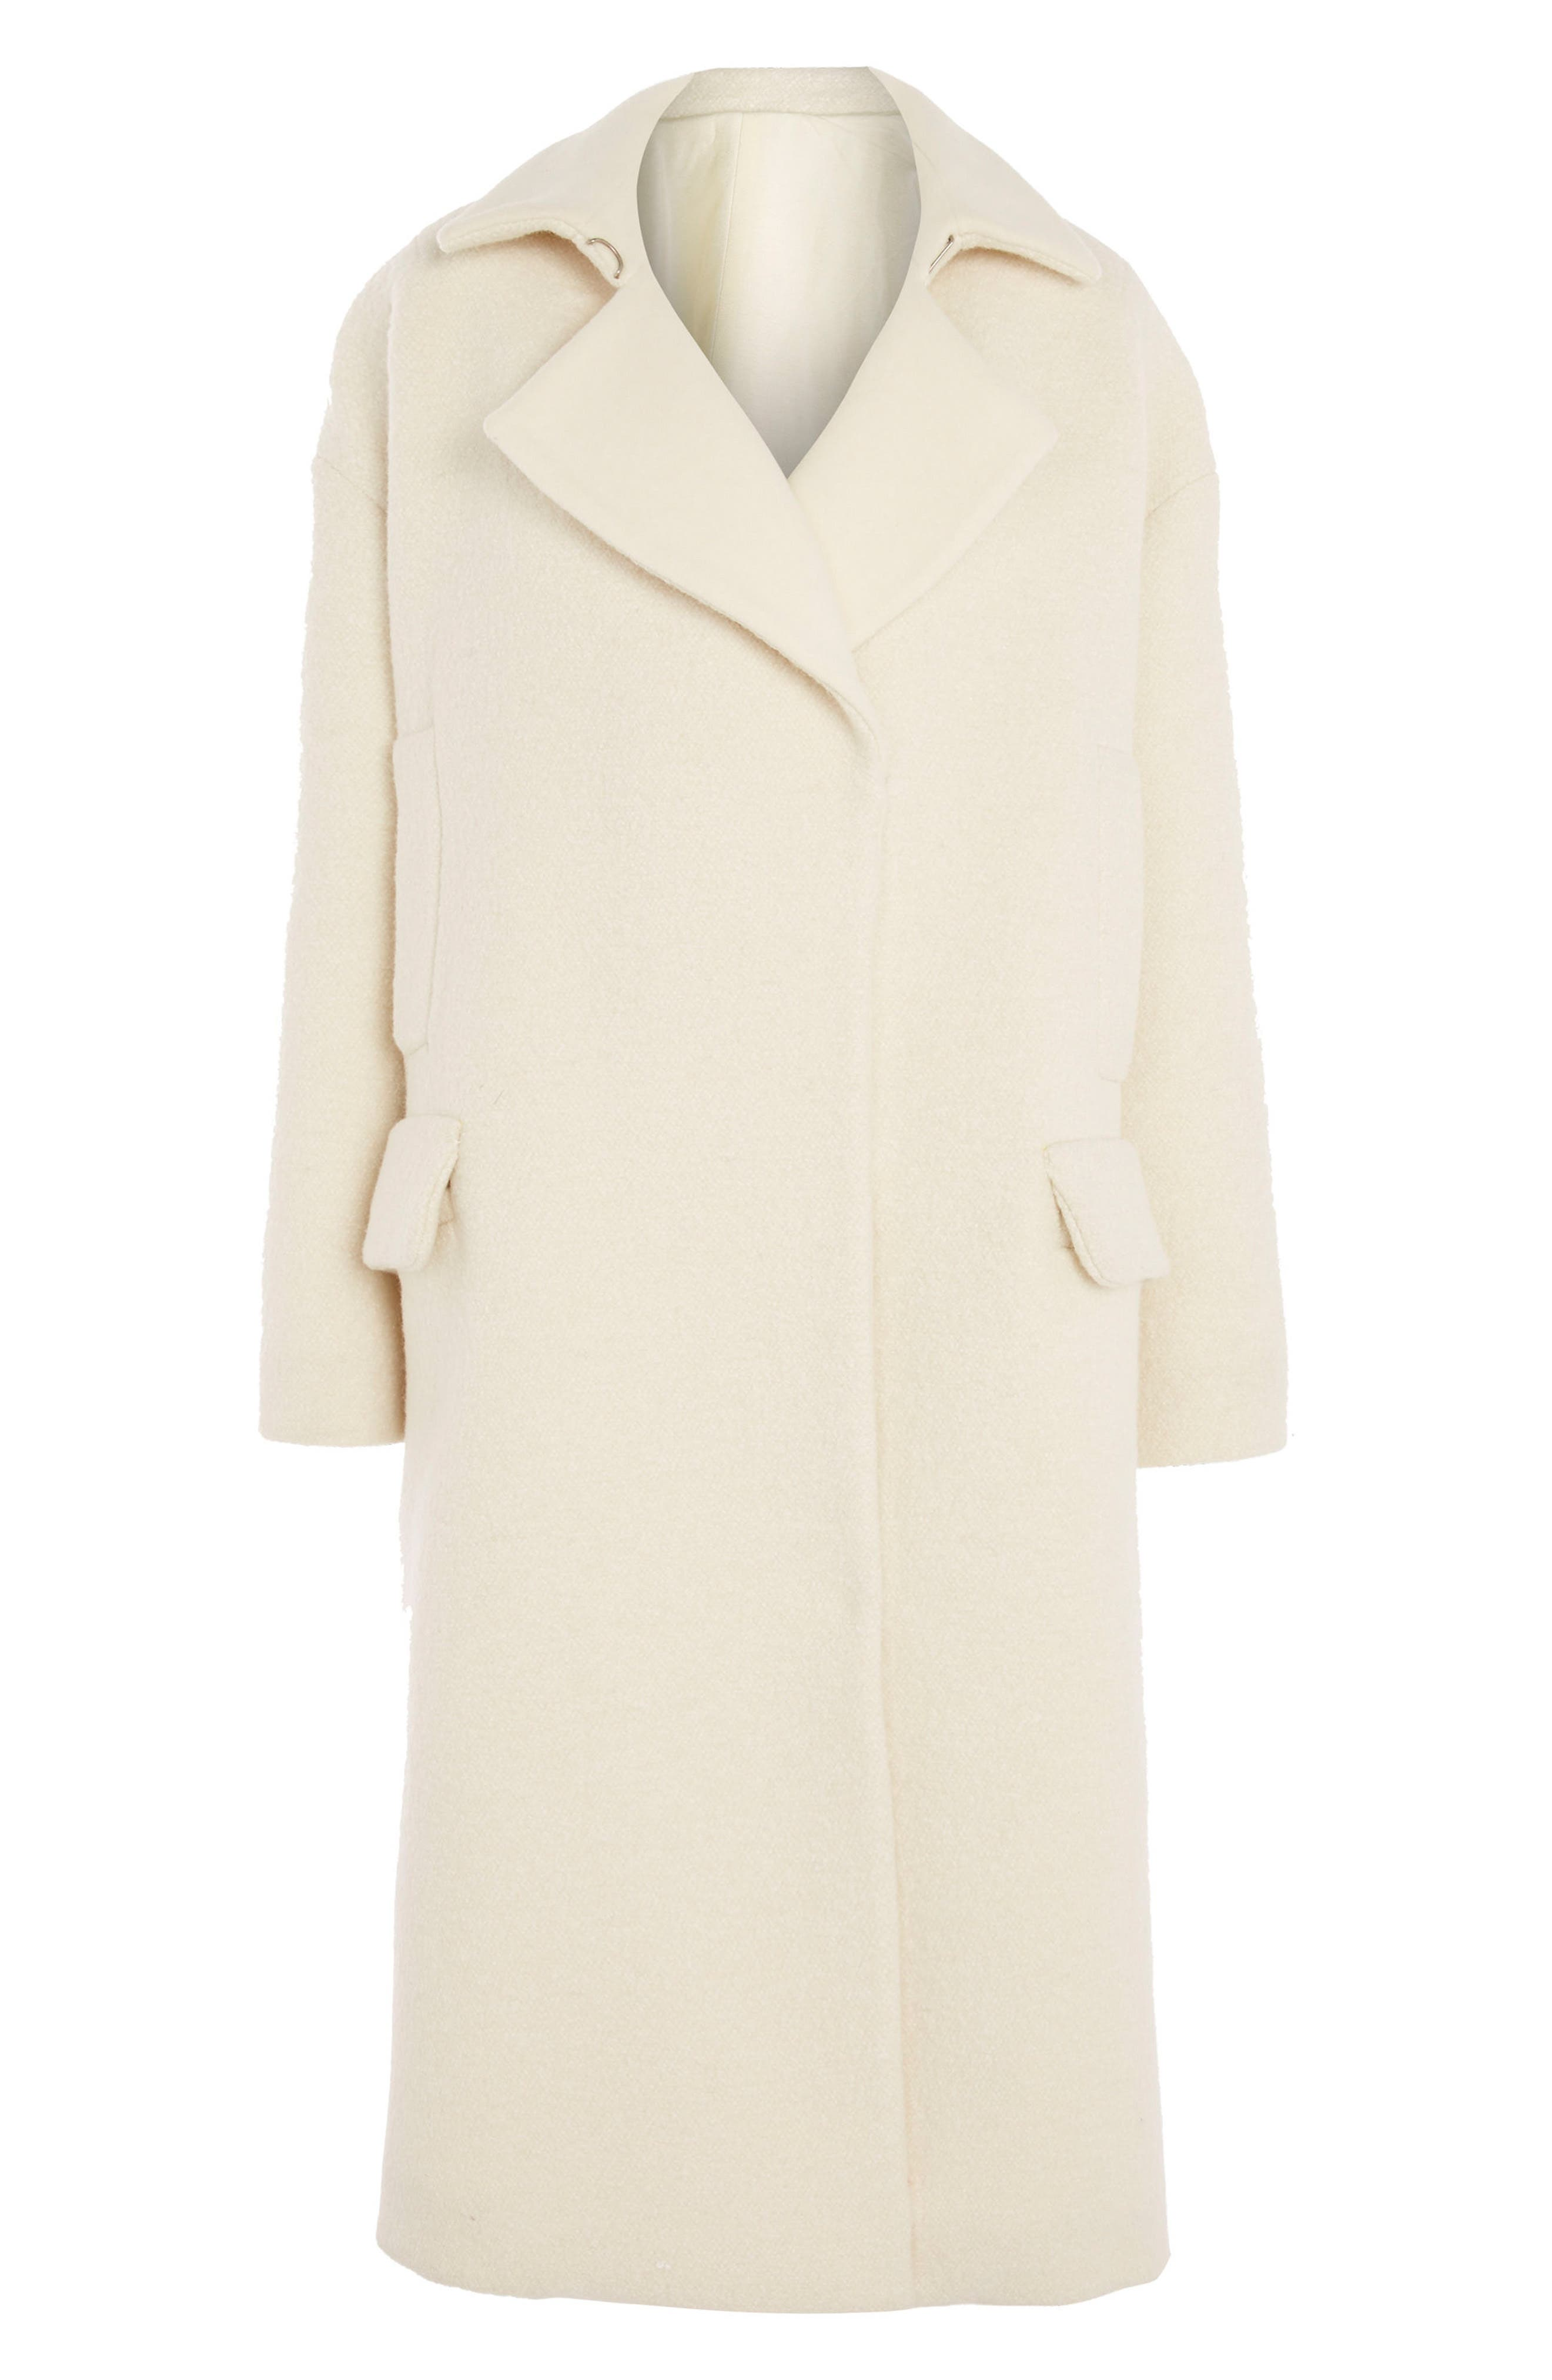 Topshop Contrast Lapel Top Coat